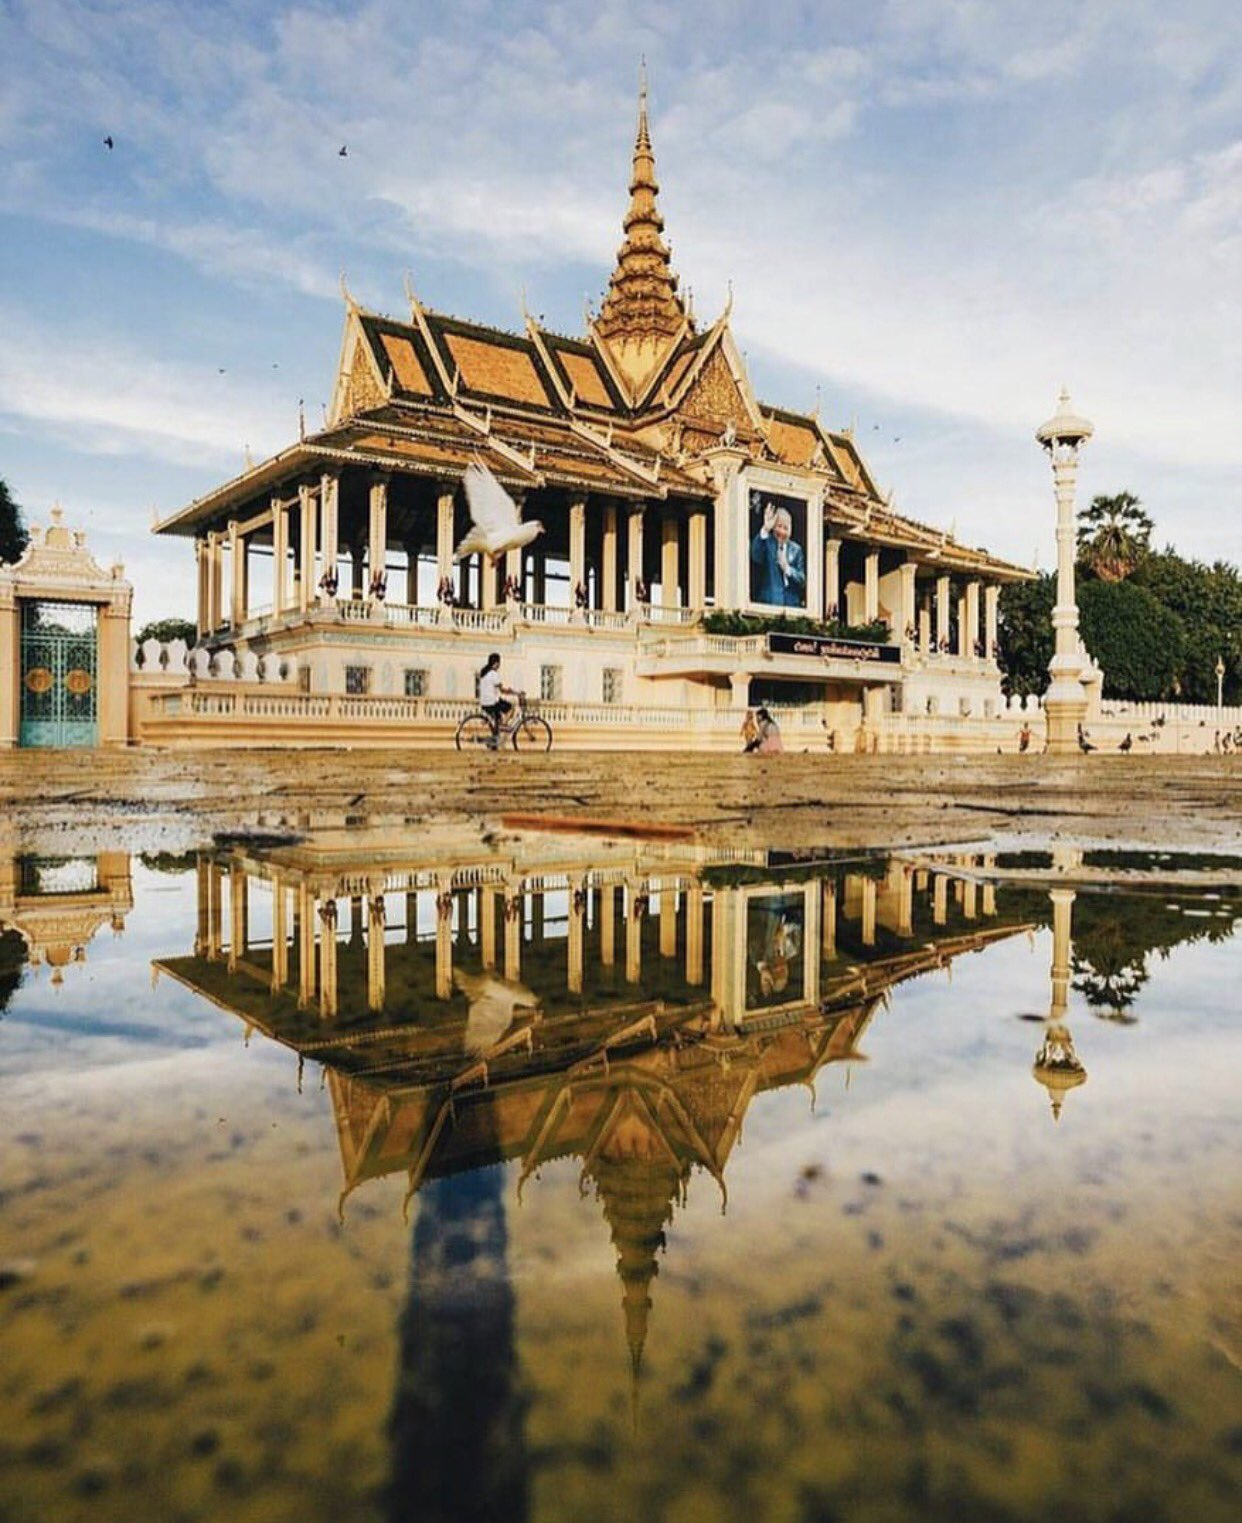 Royale Palace in Phnom Penh, Cambodia | Photo by @vutheara https://t.co/WAXLziqqwx